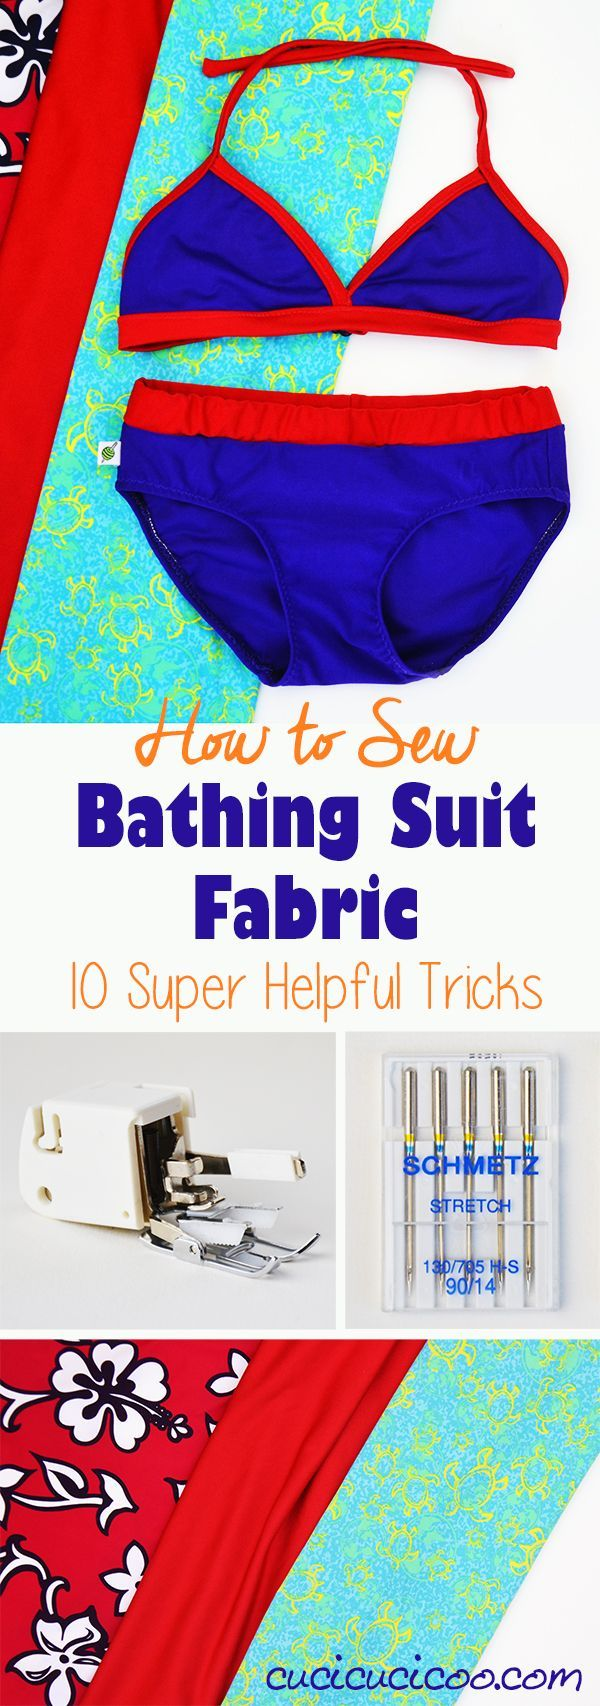 Always  wanted to make your own swimsuits, but are afraid to try? Here are 10 important  tips and tricks that will help you learn how to sew bathing suit fabric for  amazing customized DIY swimwear!